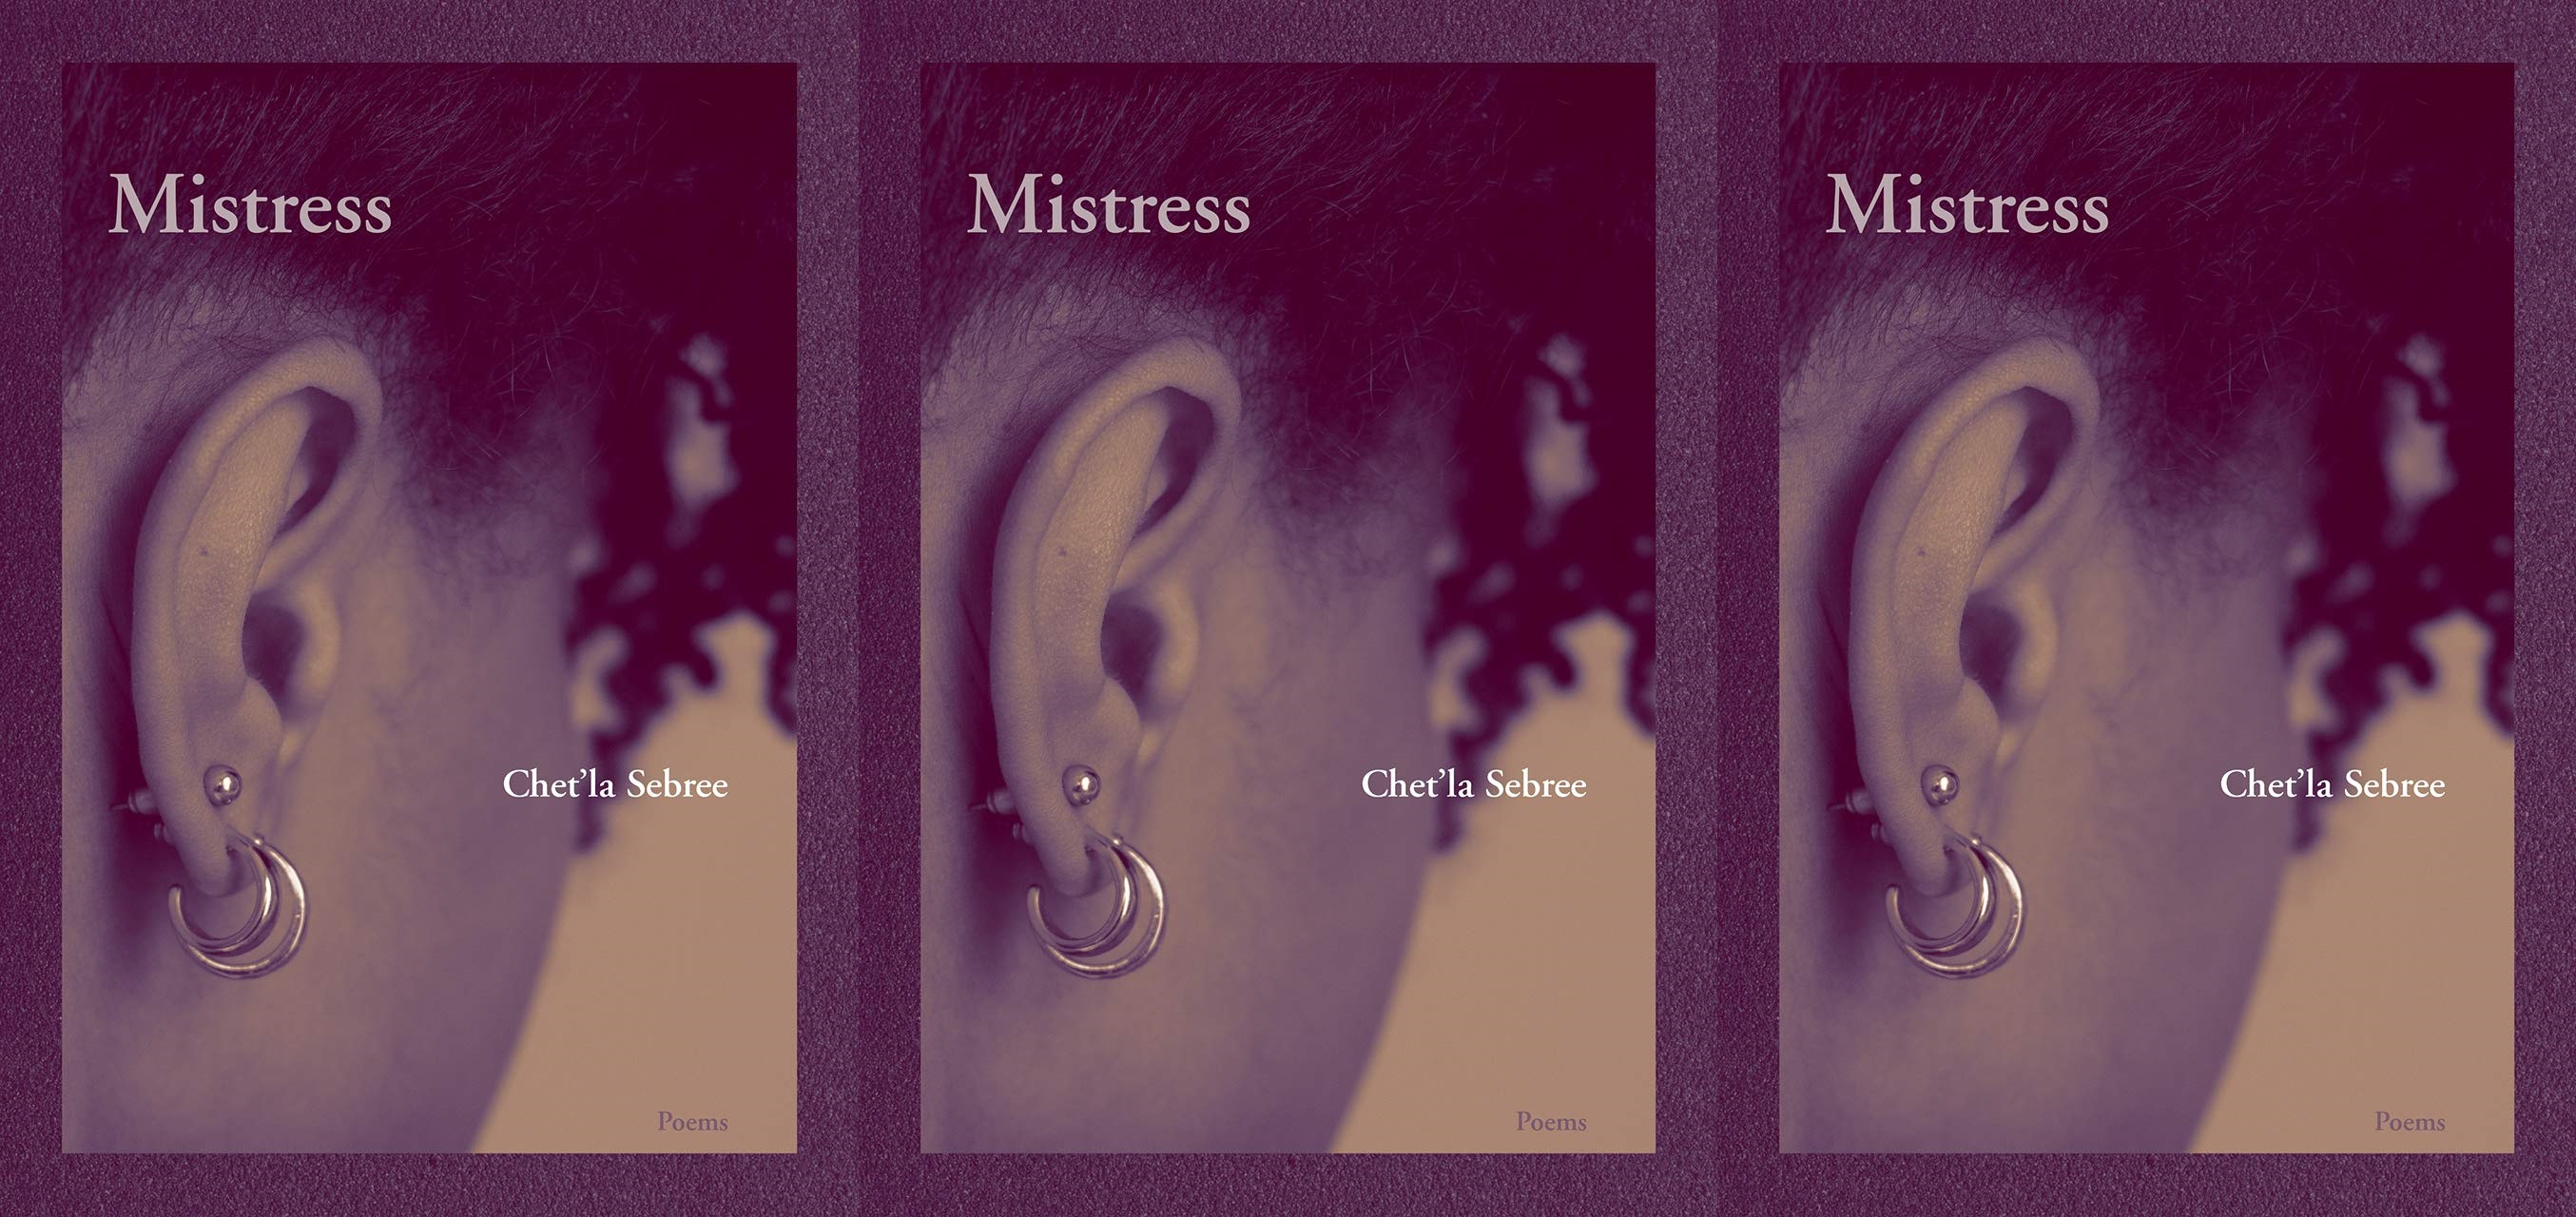 upcoming poetry collections, mistresses by chet'la sebree, books